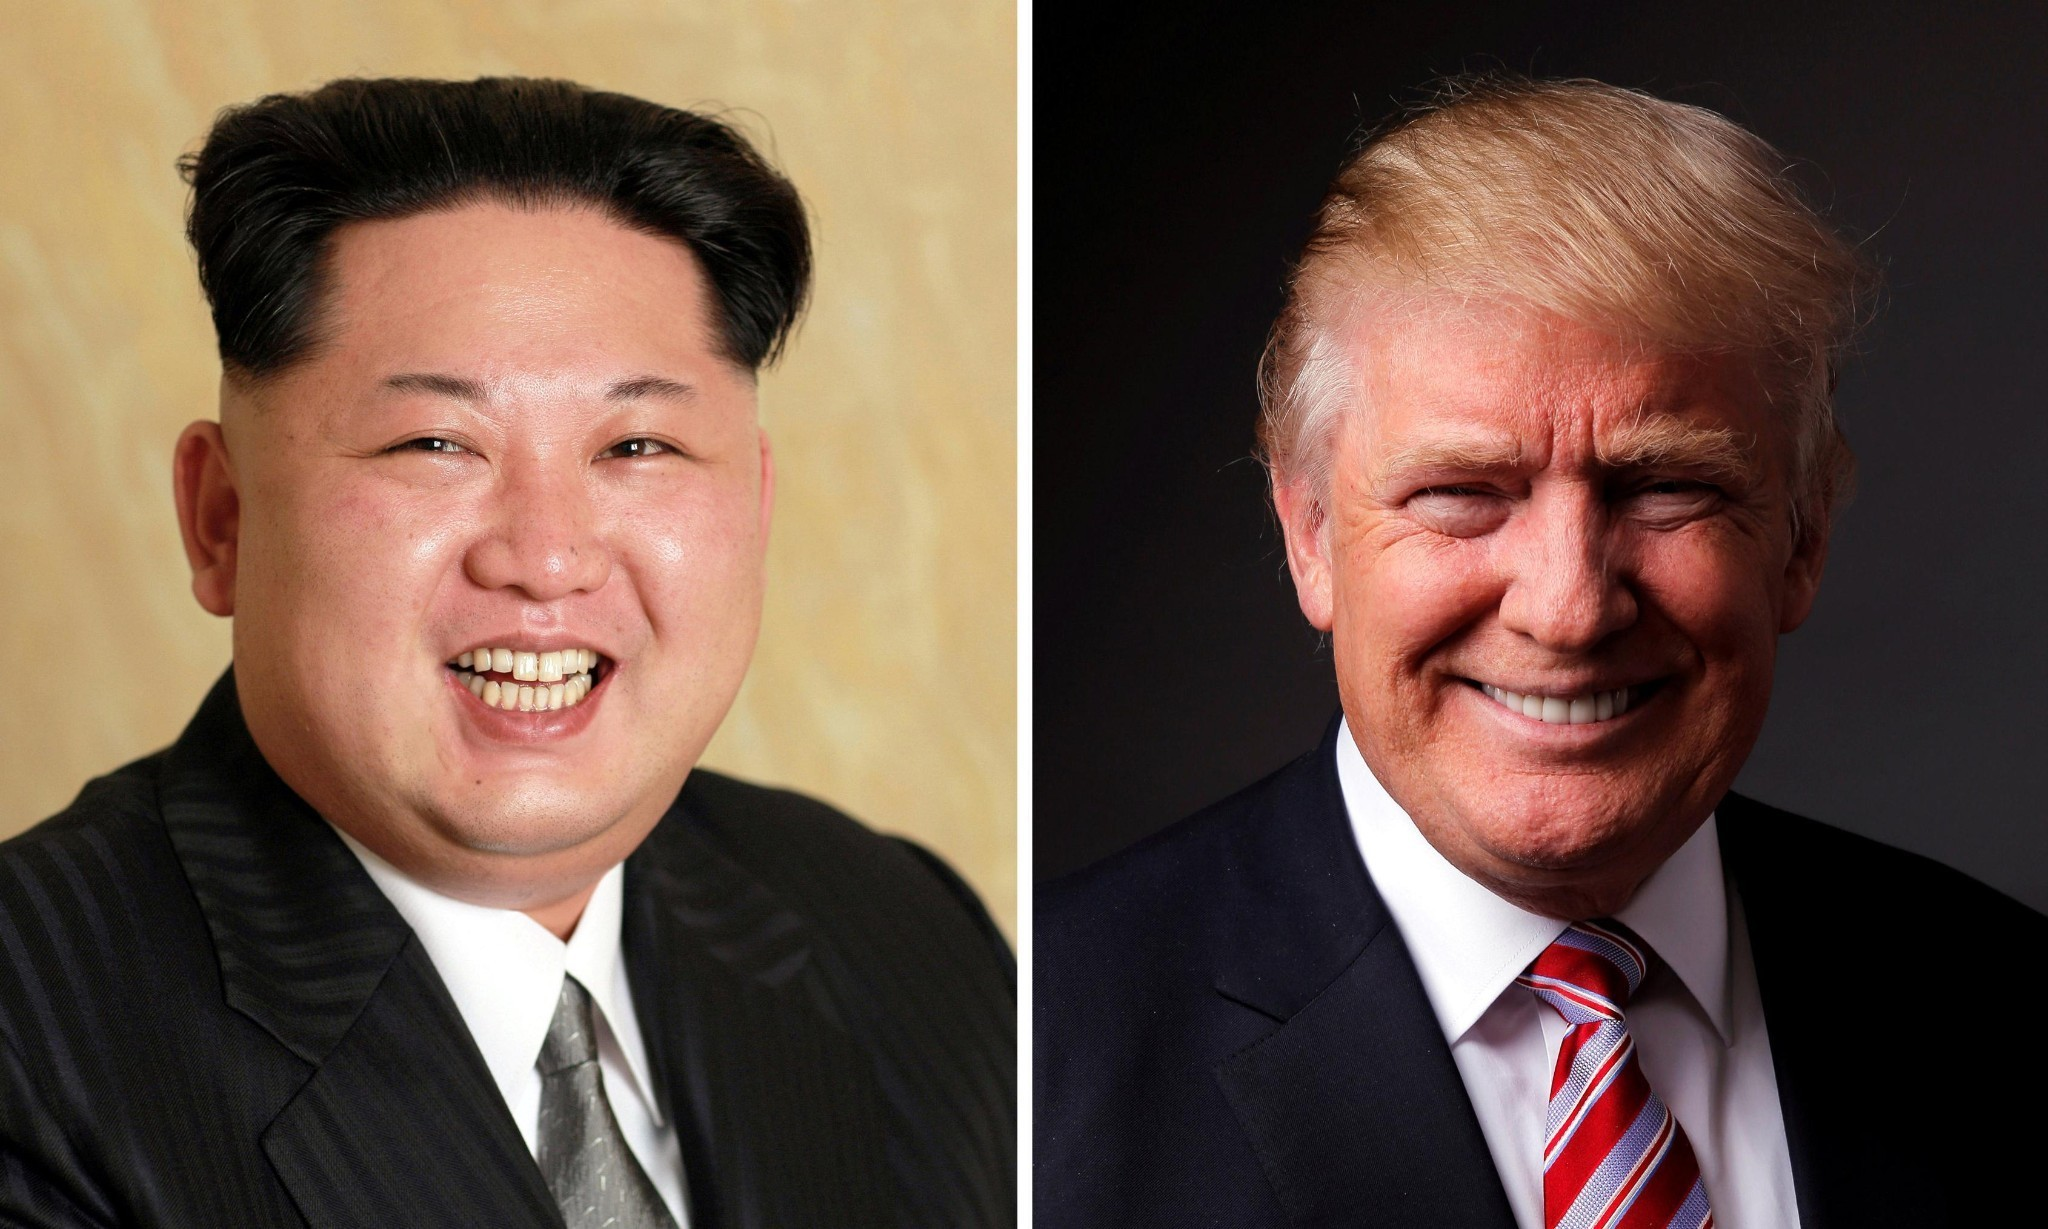 North Korea praises Trump and urges US voters to reject 'dull Hillary'